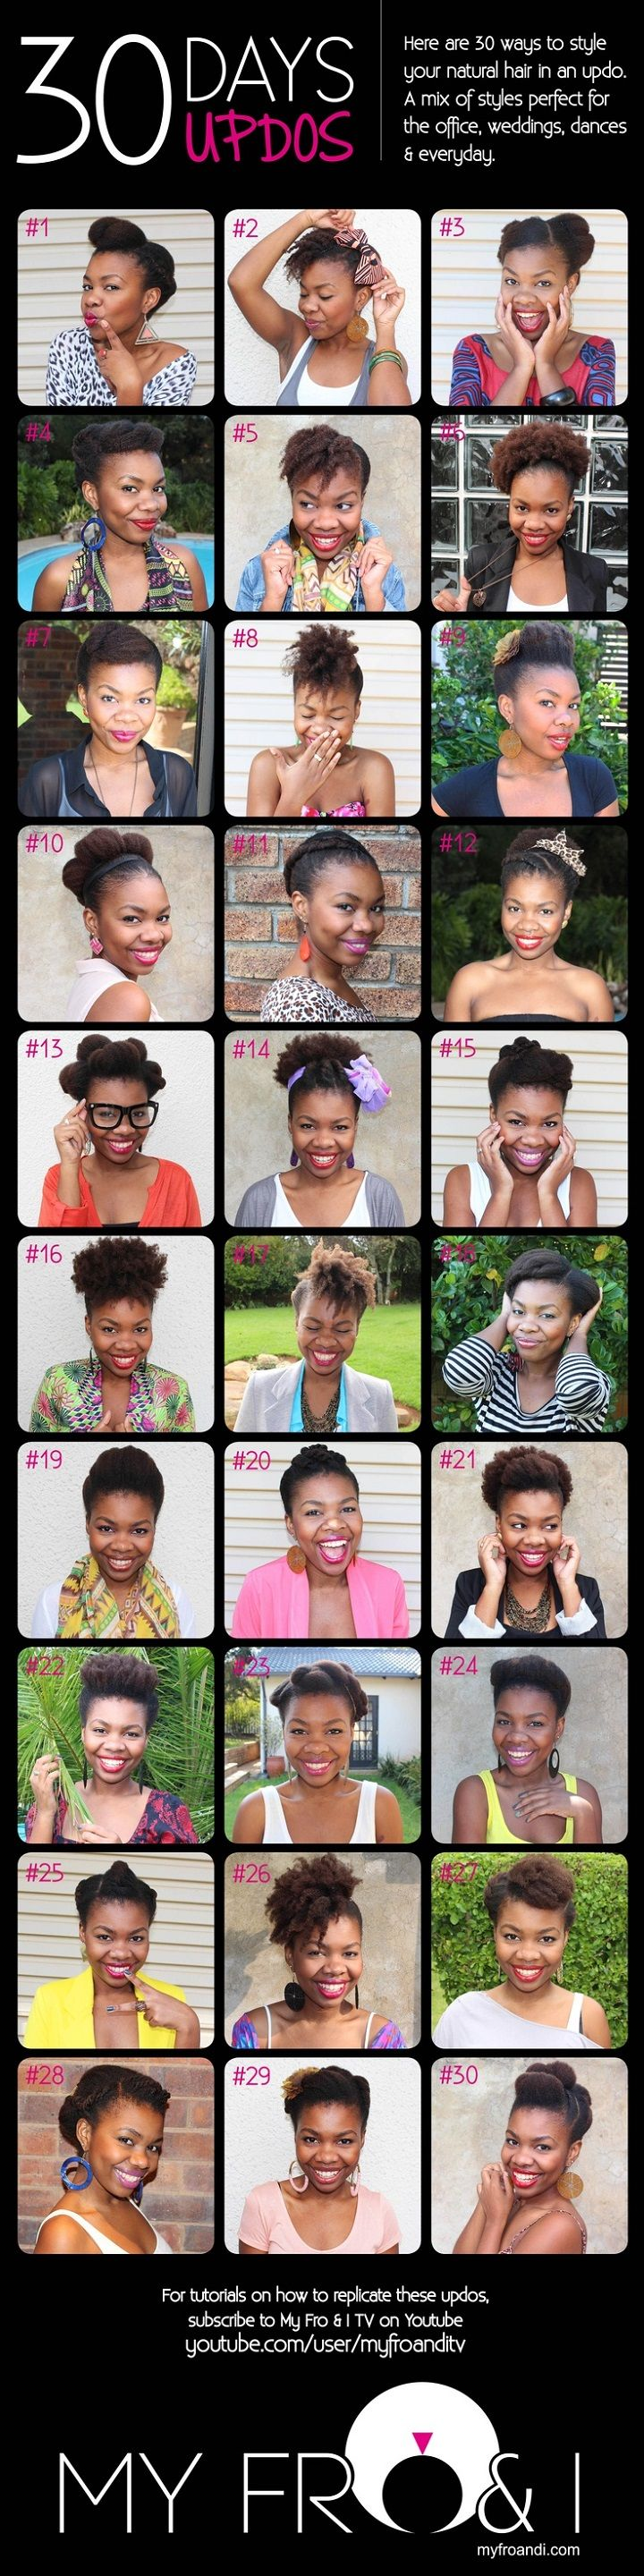 30 Updo Hairstyles For Your Natural Hair — BlackHairInformation.com - Growing Black Hair Long And Healthy